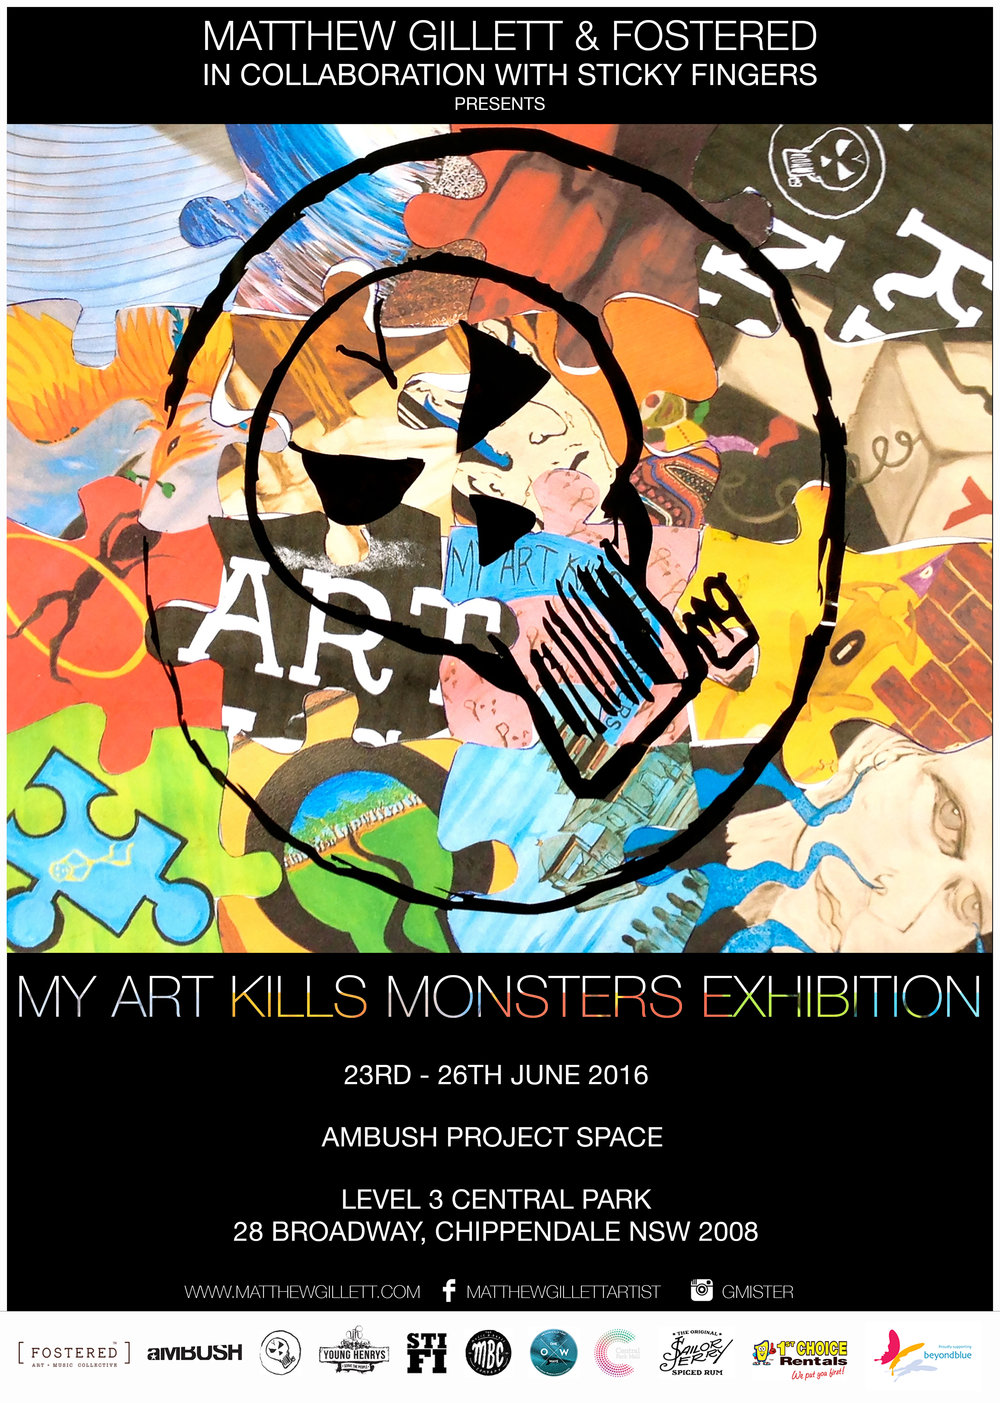 MY ART KILLS MONSTERS